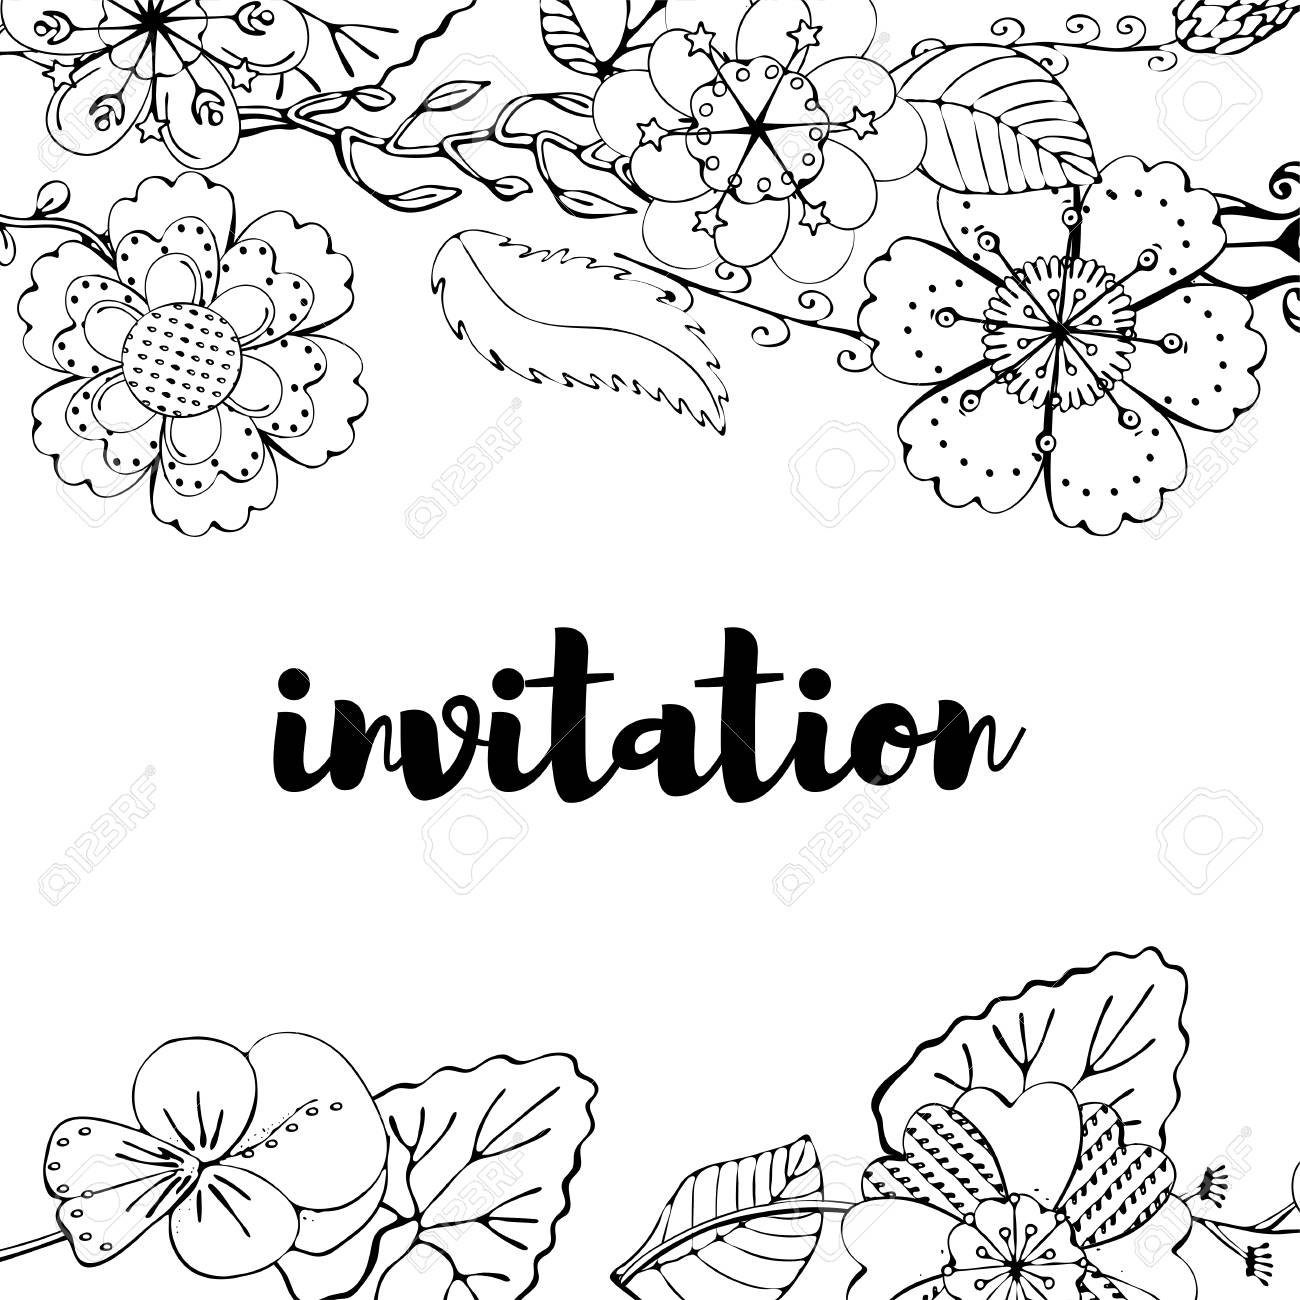 Monochrome Invitation Card With Floral Borders On White Background